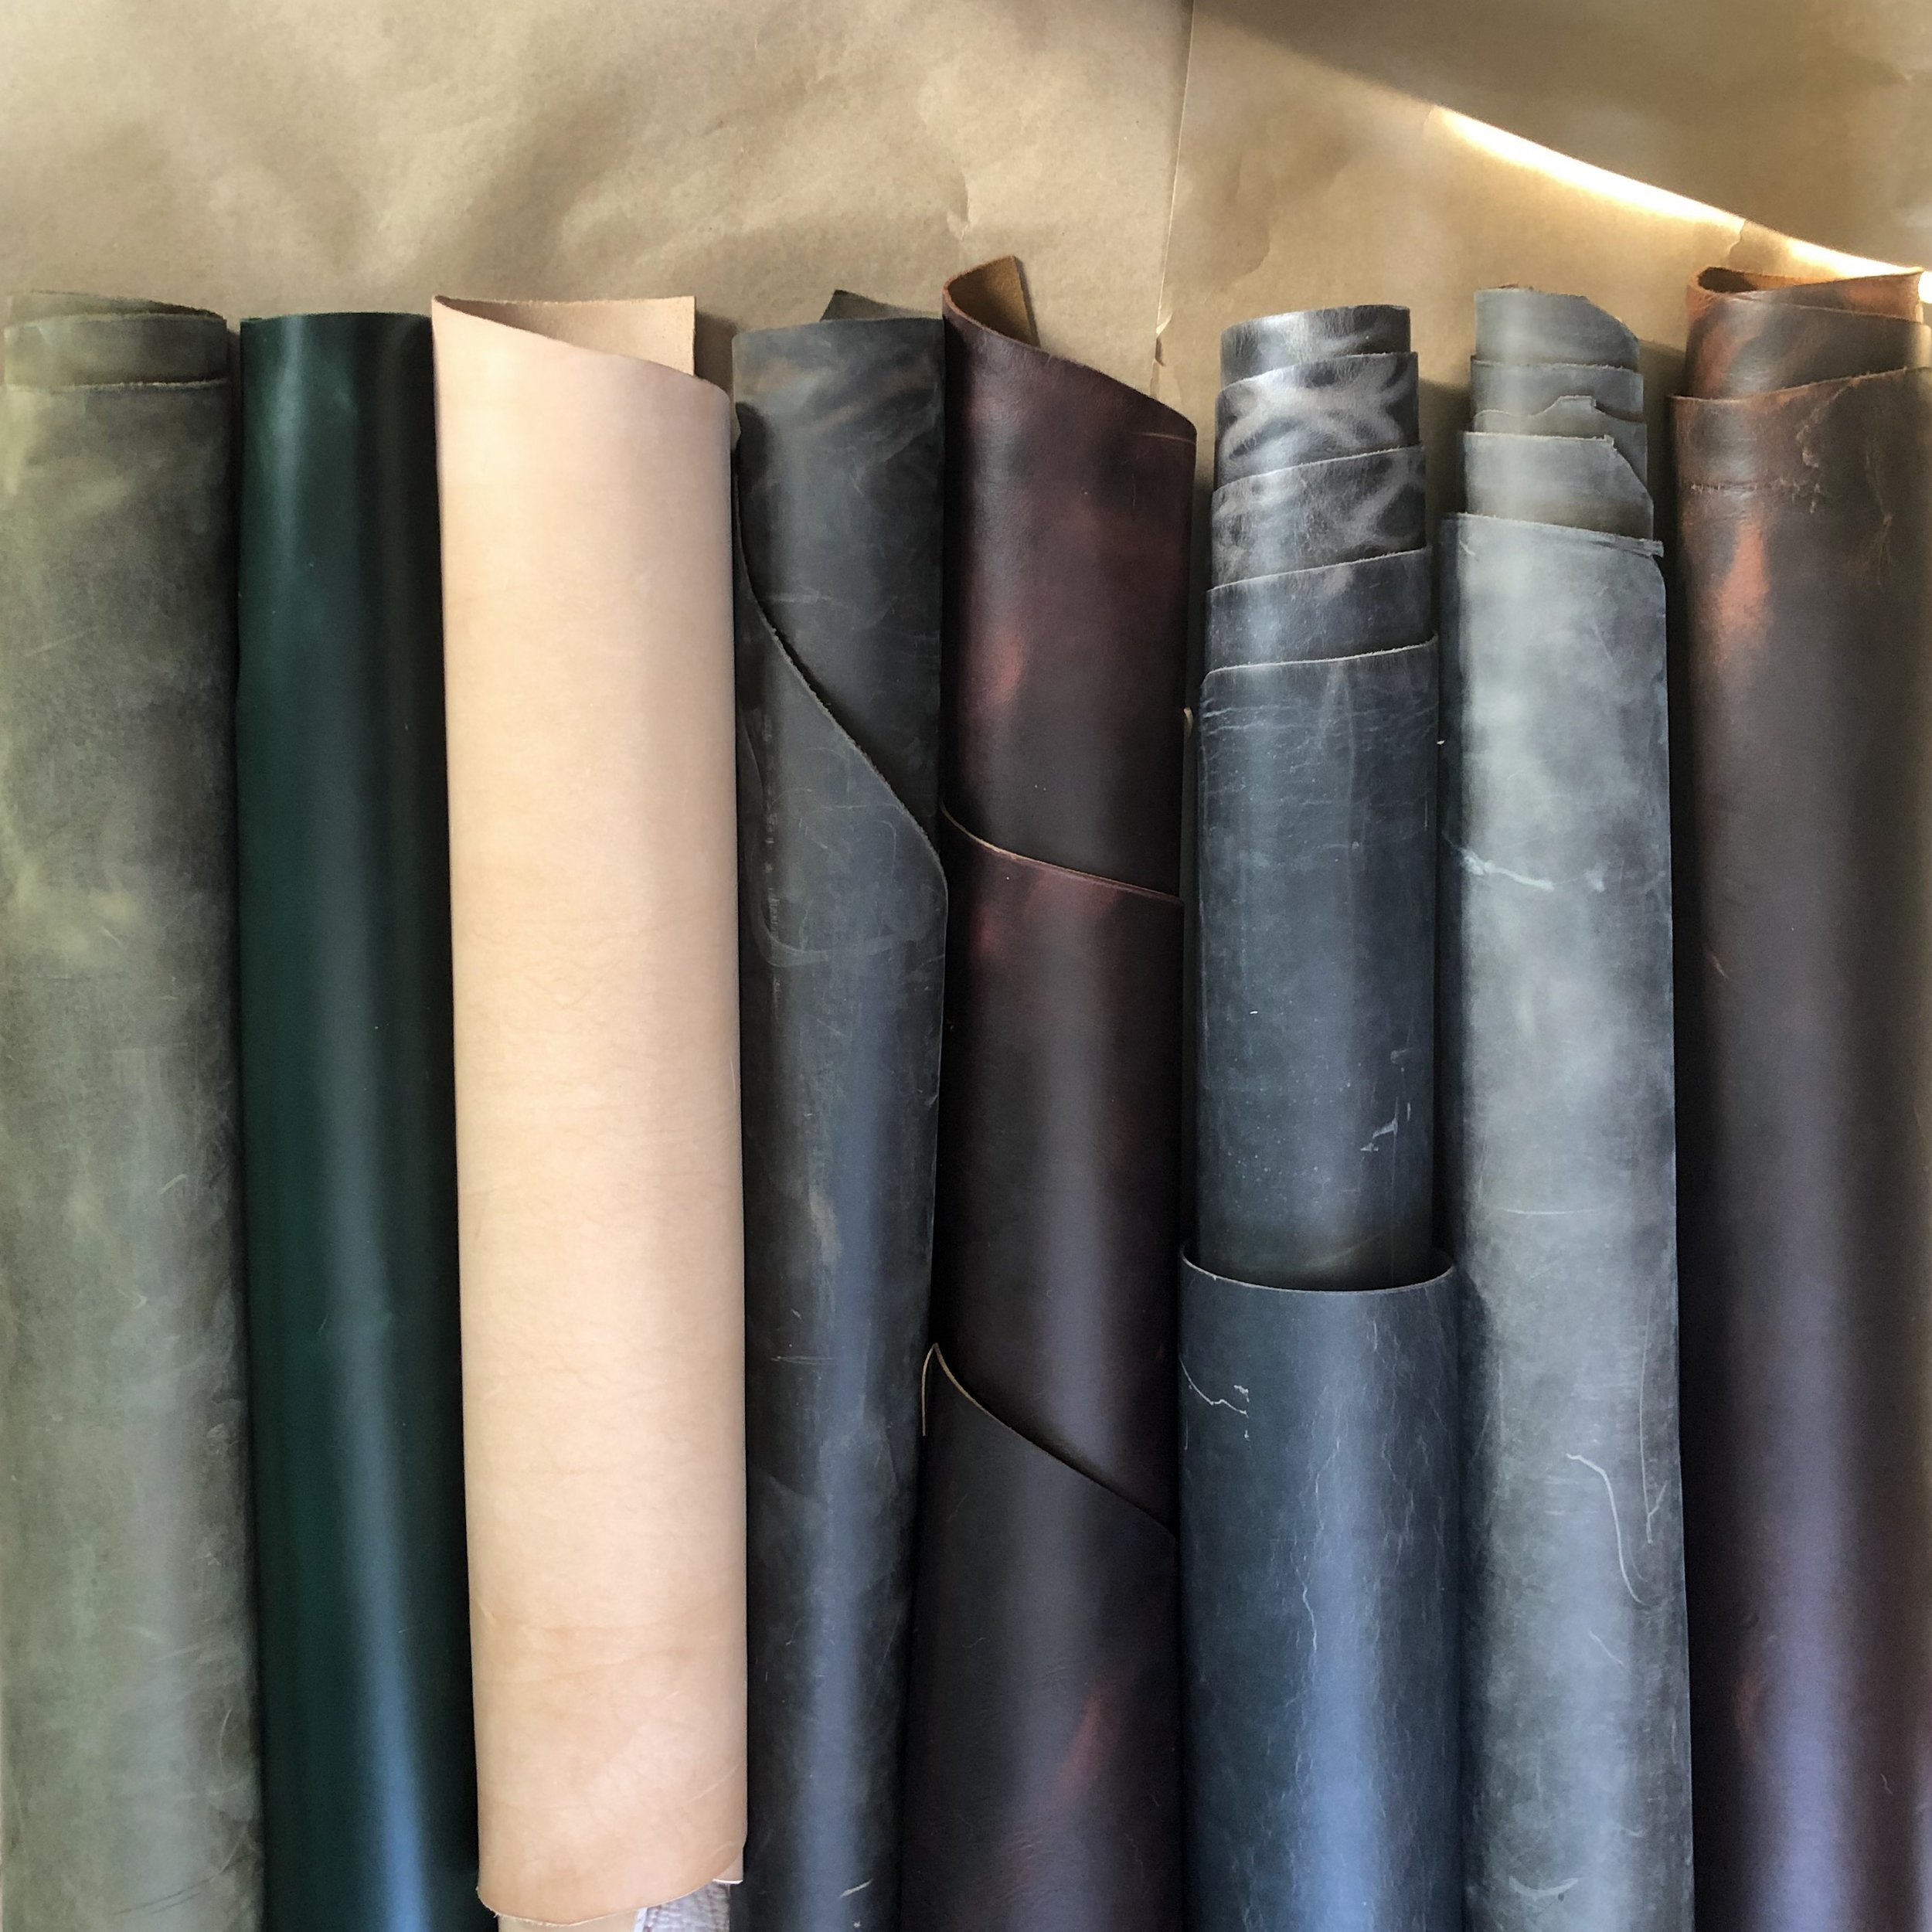 Moss Green Catawampous, York Green Golf, Natural Veg-tan, Tan Crazy Horse, Black Cherry, The Wilde Moon, Brushed Nickel Catawampous.